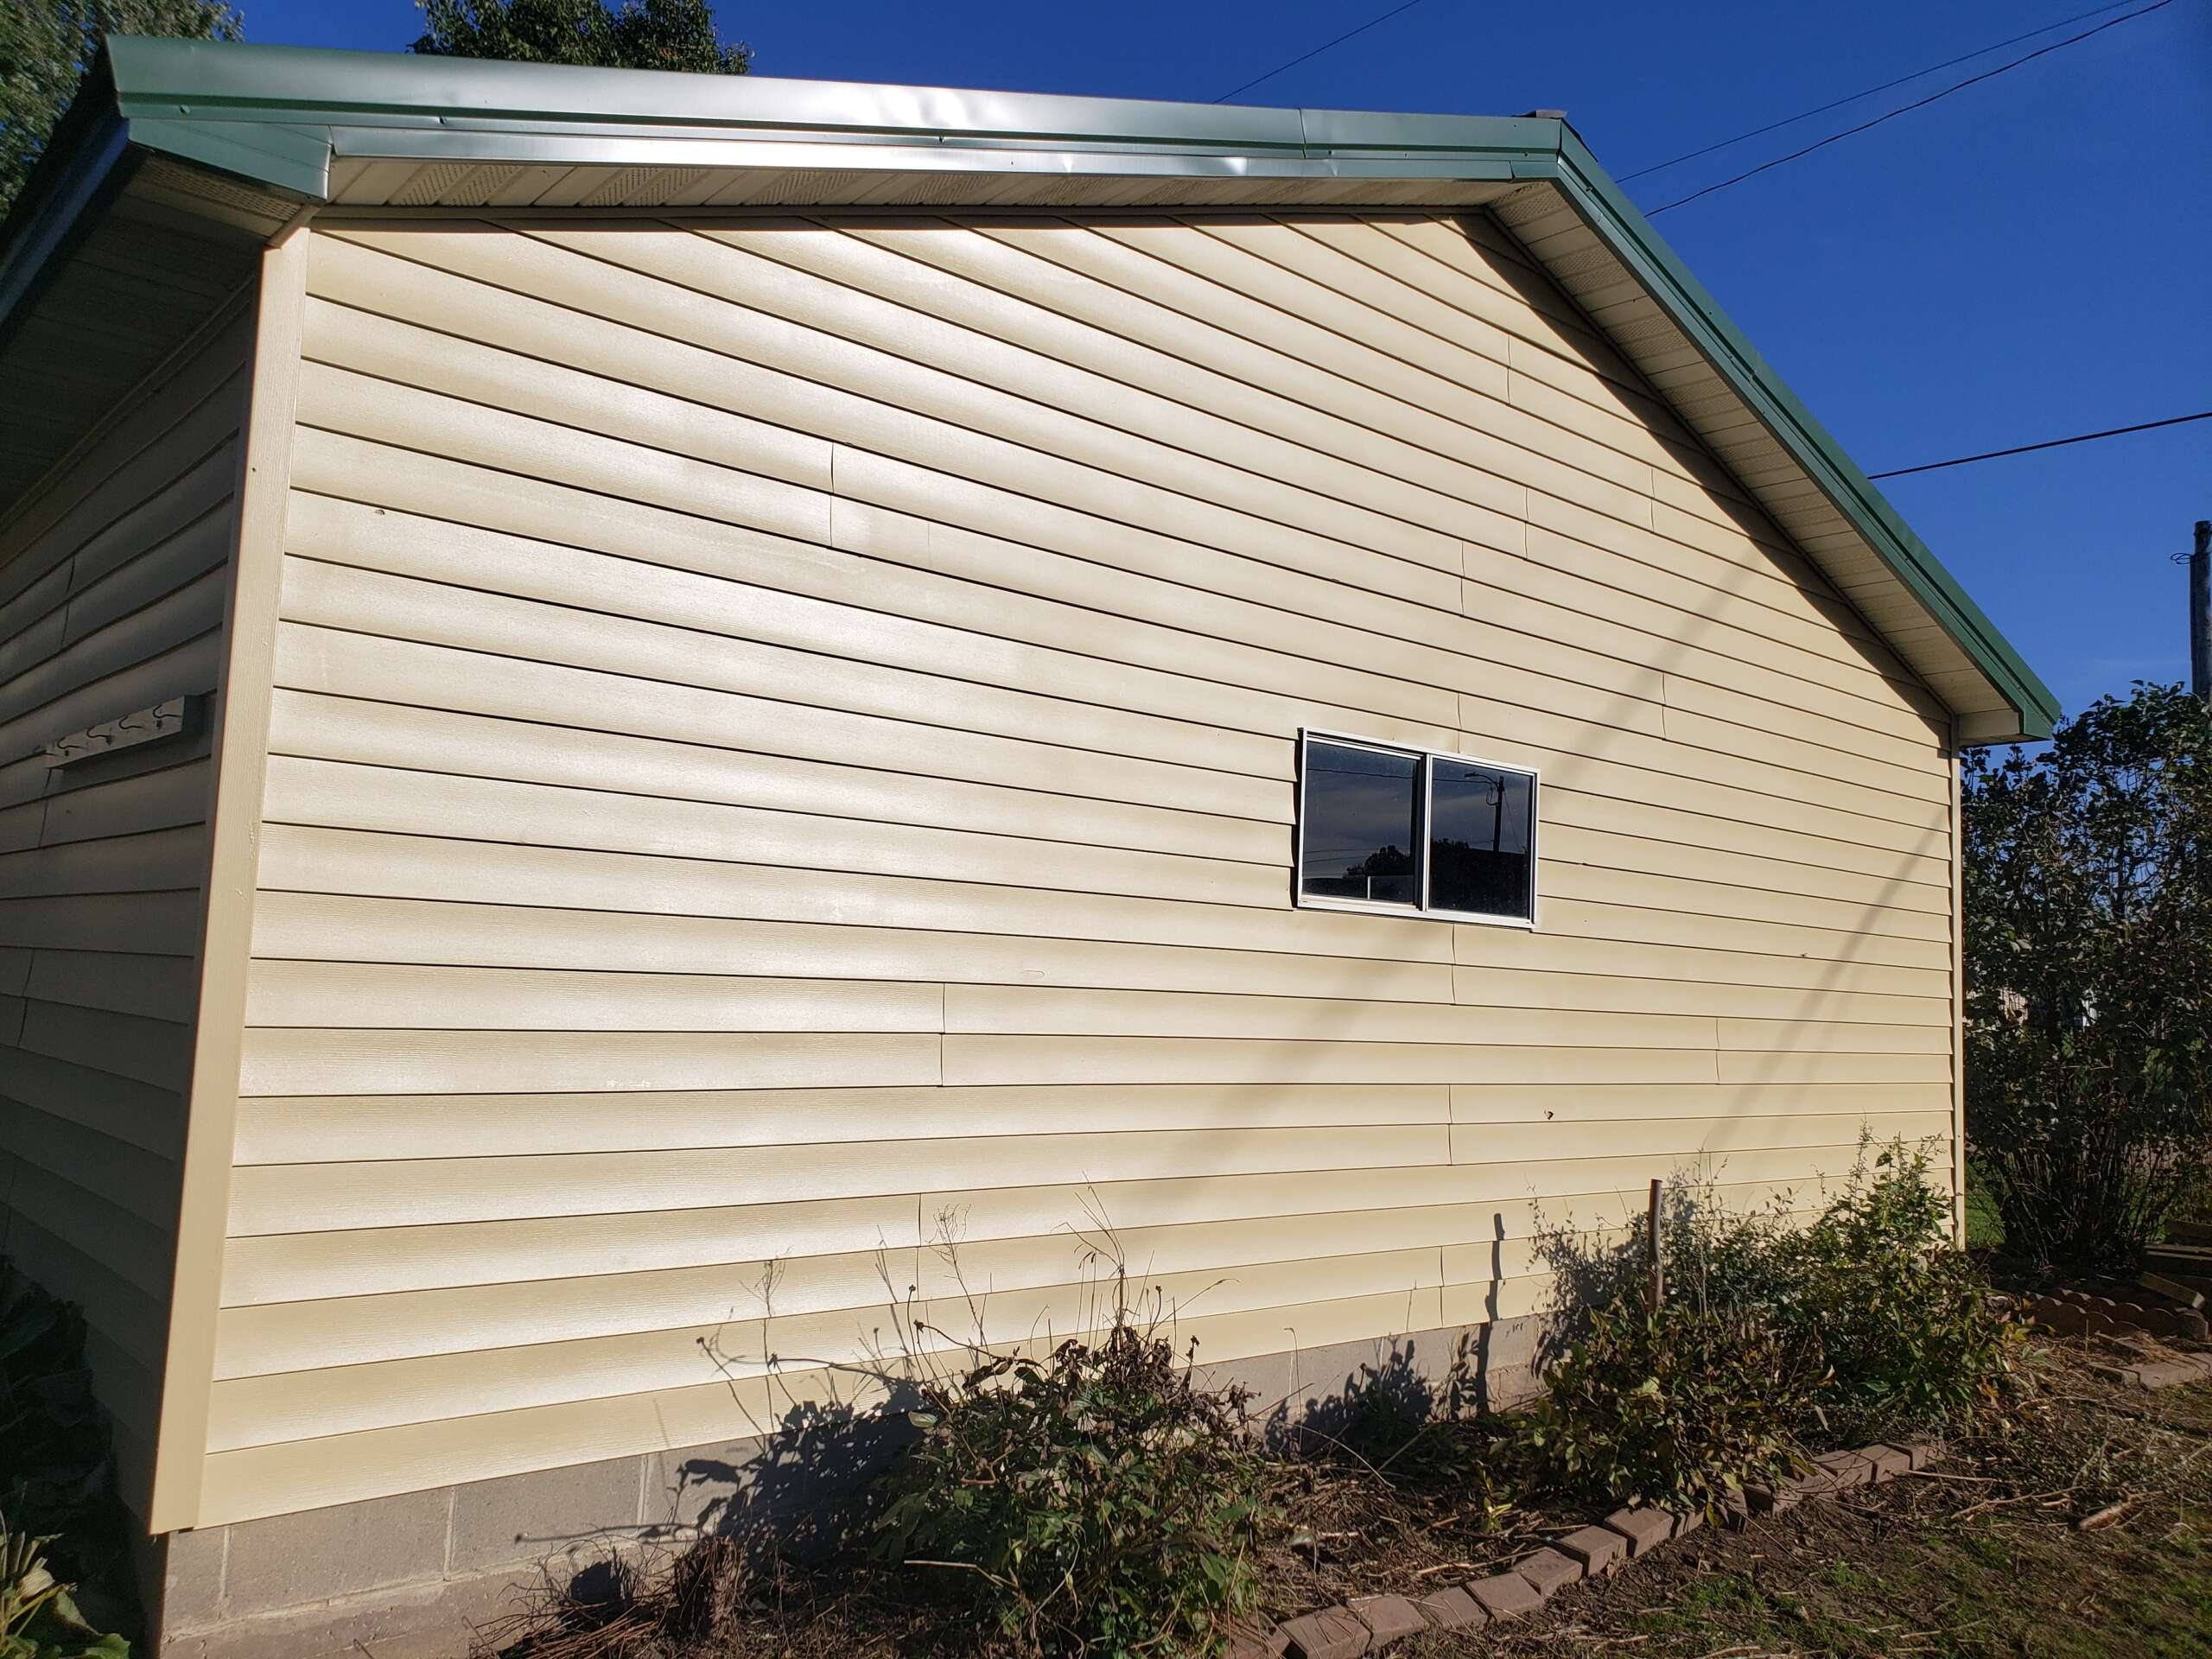 After Painting Boone Garage, Great Plains Painting